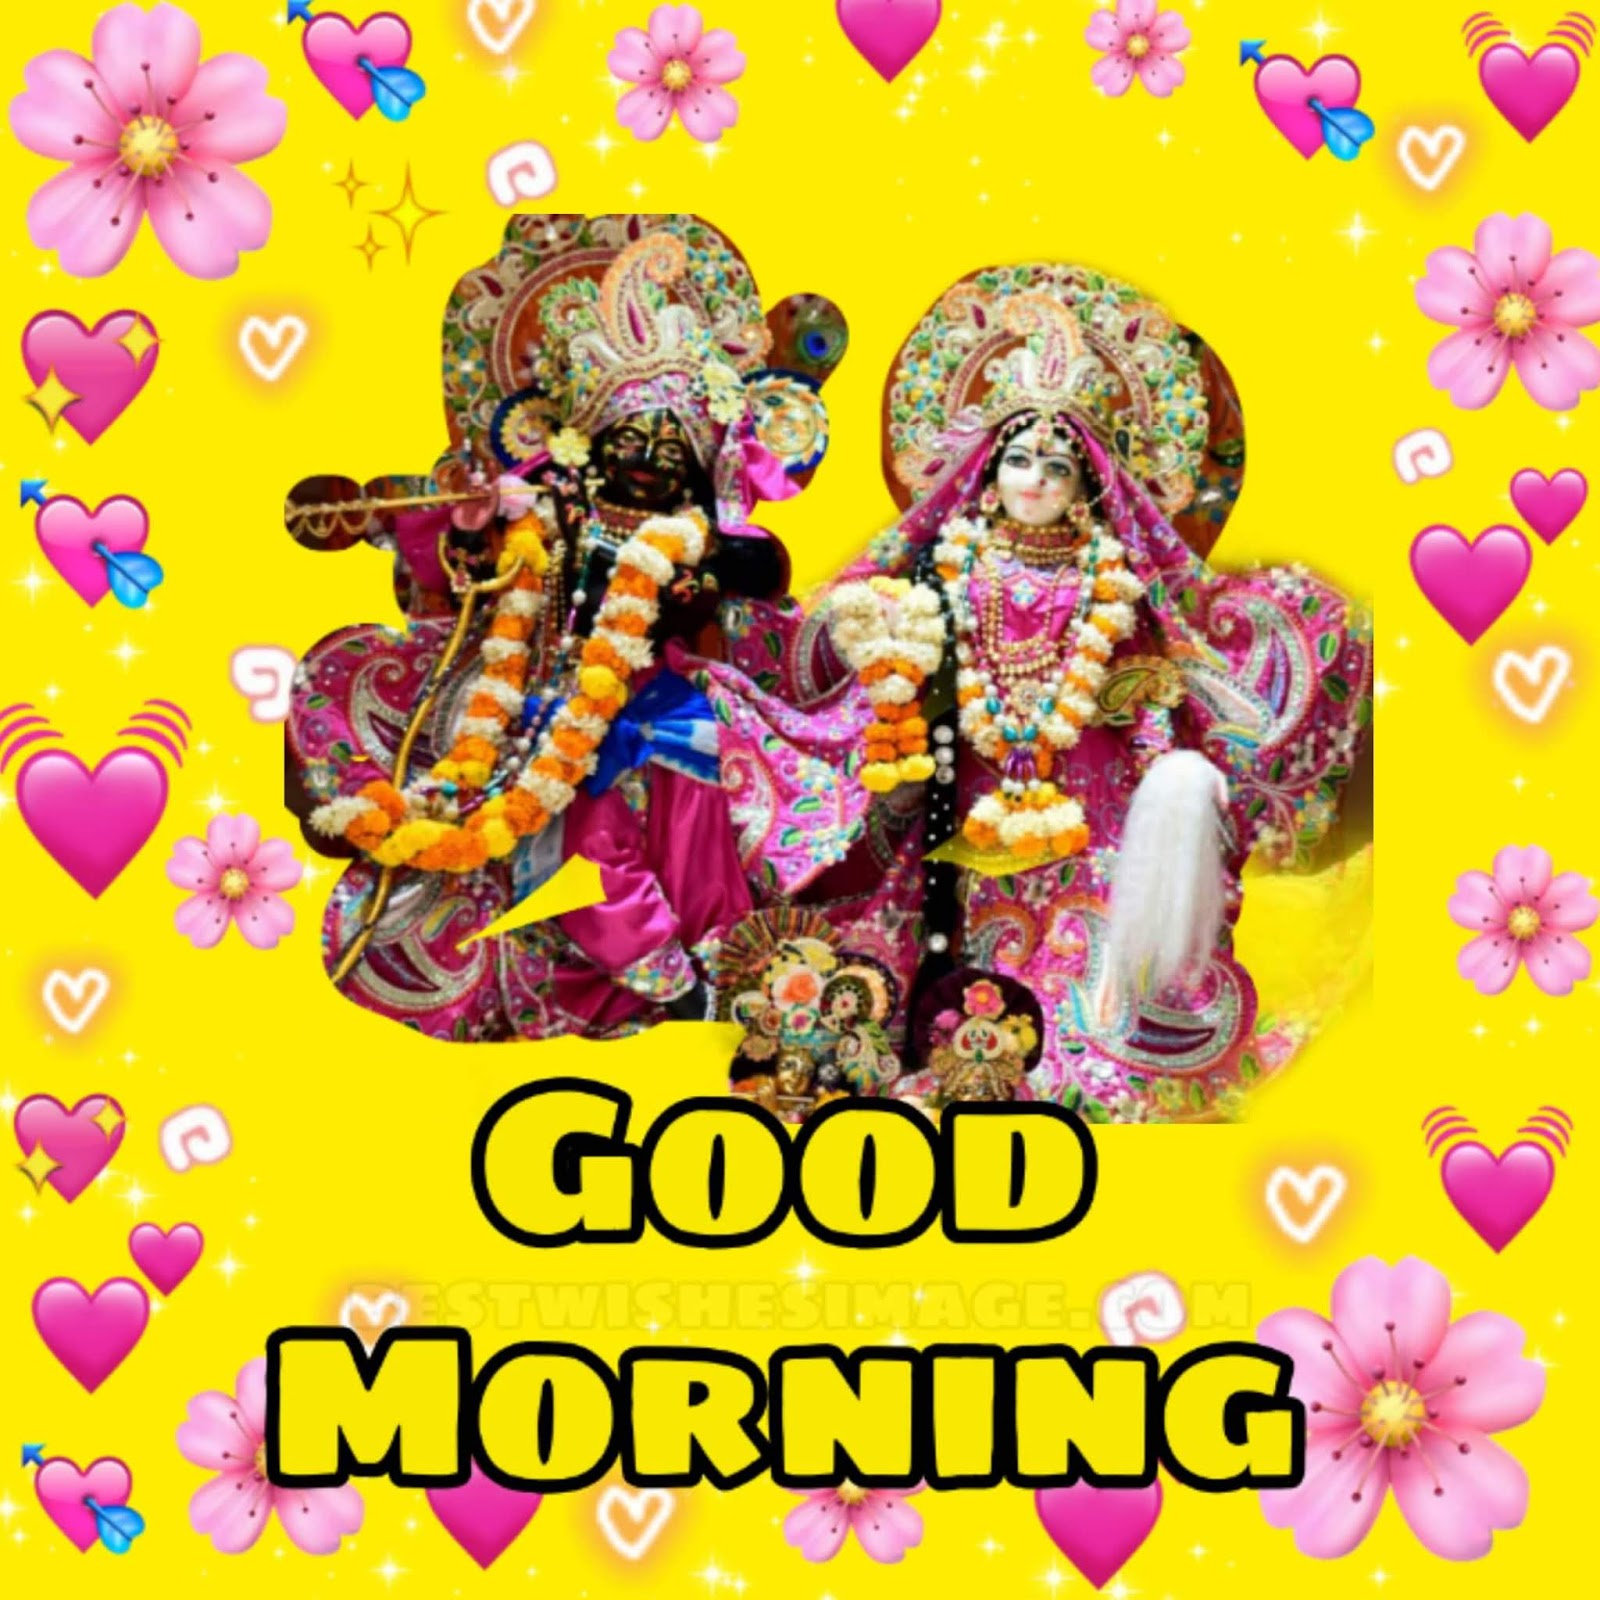 good%2Bmorning%2Bjai%2Bshree%2Bradhe%2Bkrishna%2Bfree%2Bwallpaper%2Bphoto%2Bpics%2Band%2Bimages%2Bfree%2Bdownload